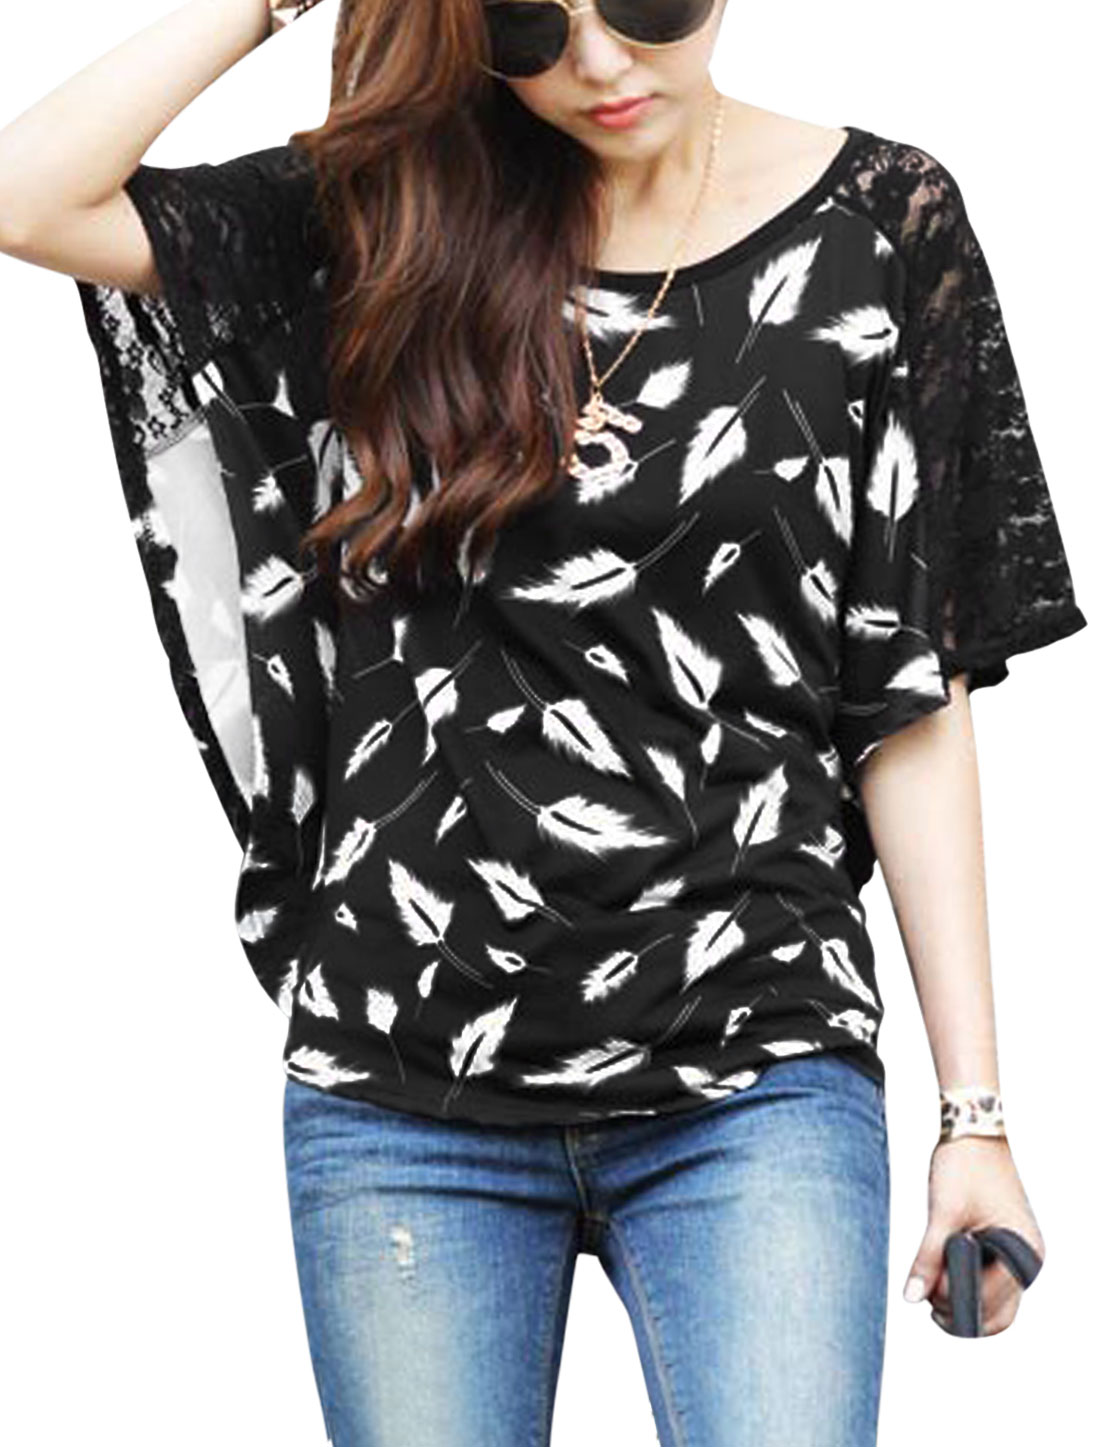 Cozy Fit Feather Pattern Casual Blouse for Lady Black S